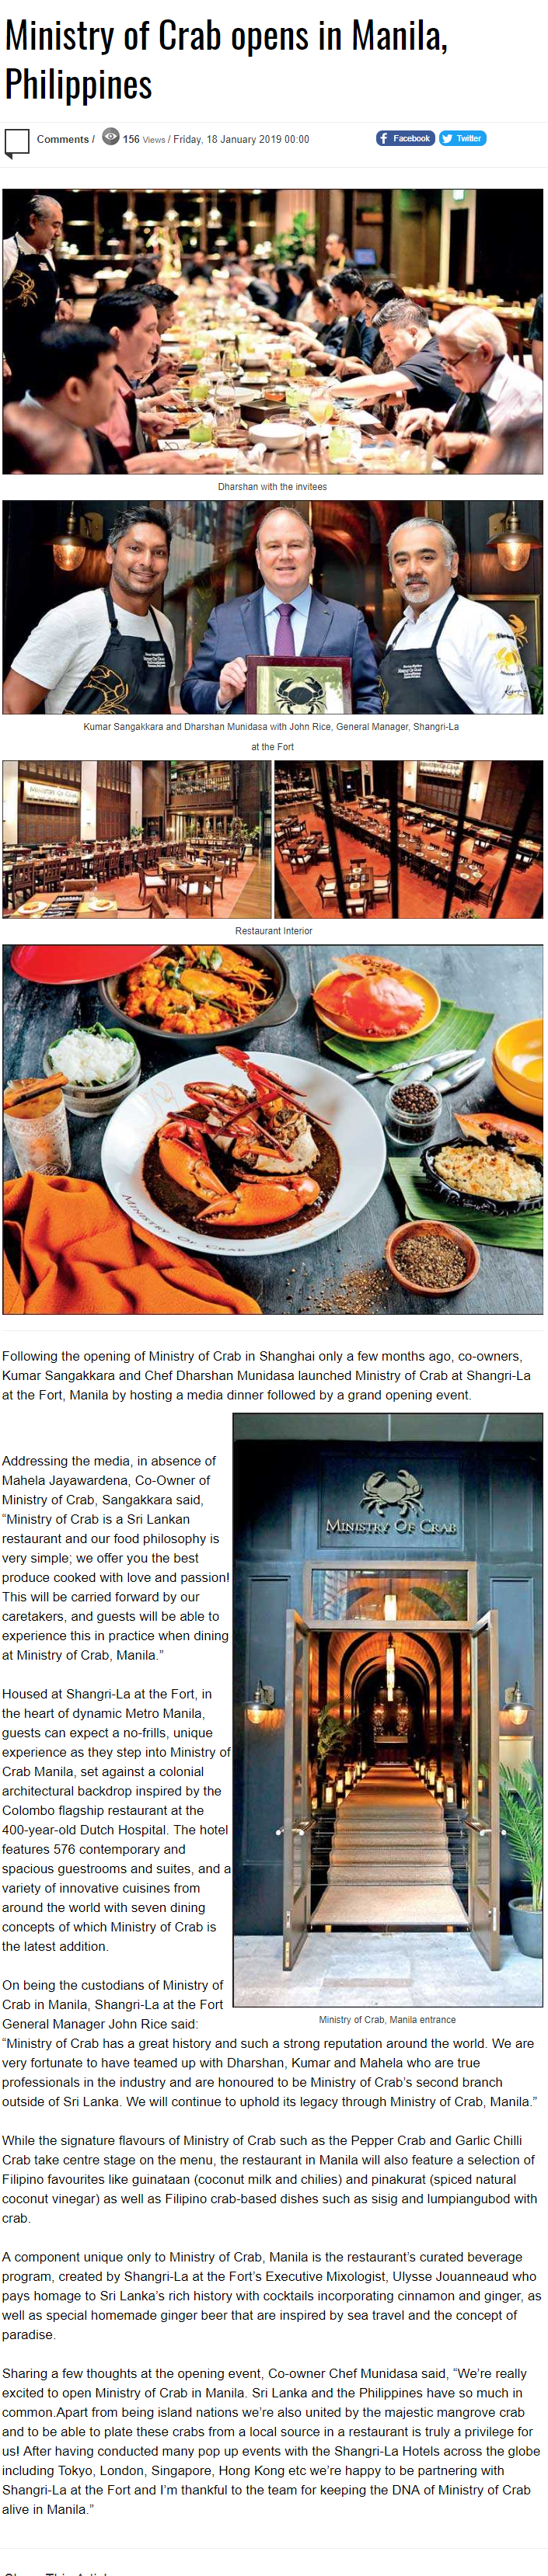 Ministry Of Crab Opens In Manila, Philippines